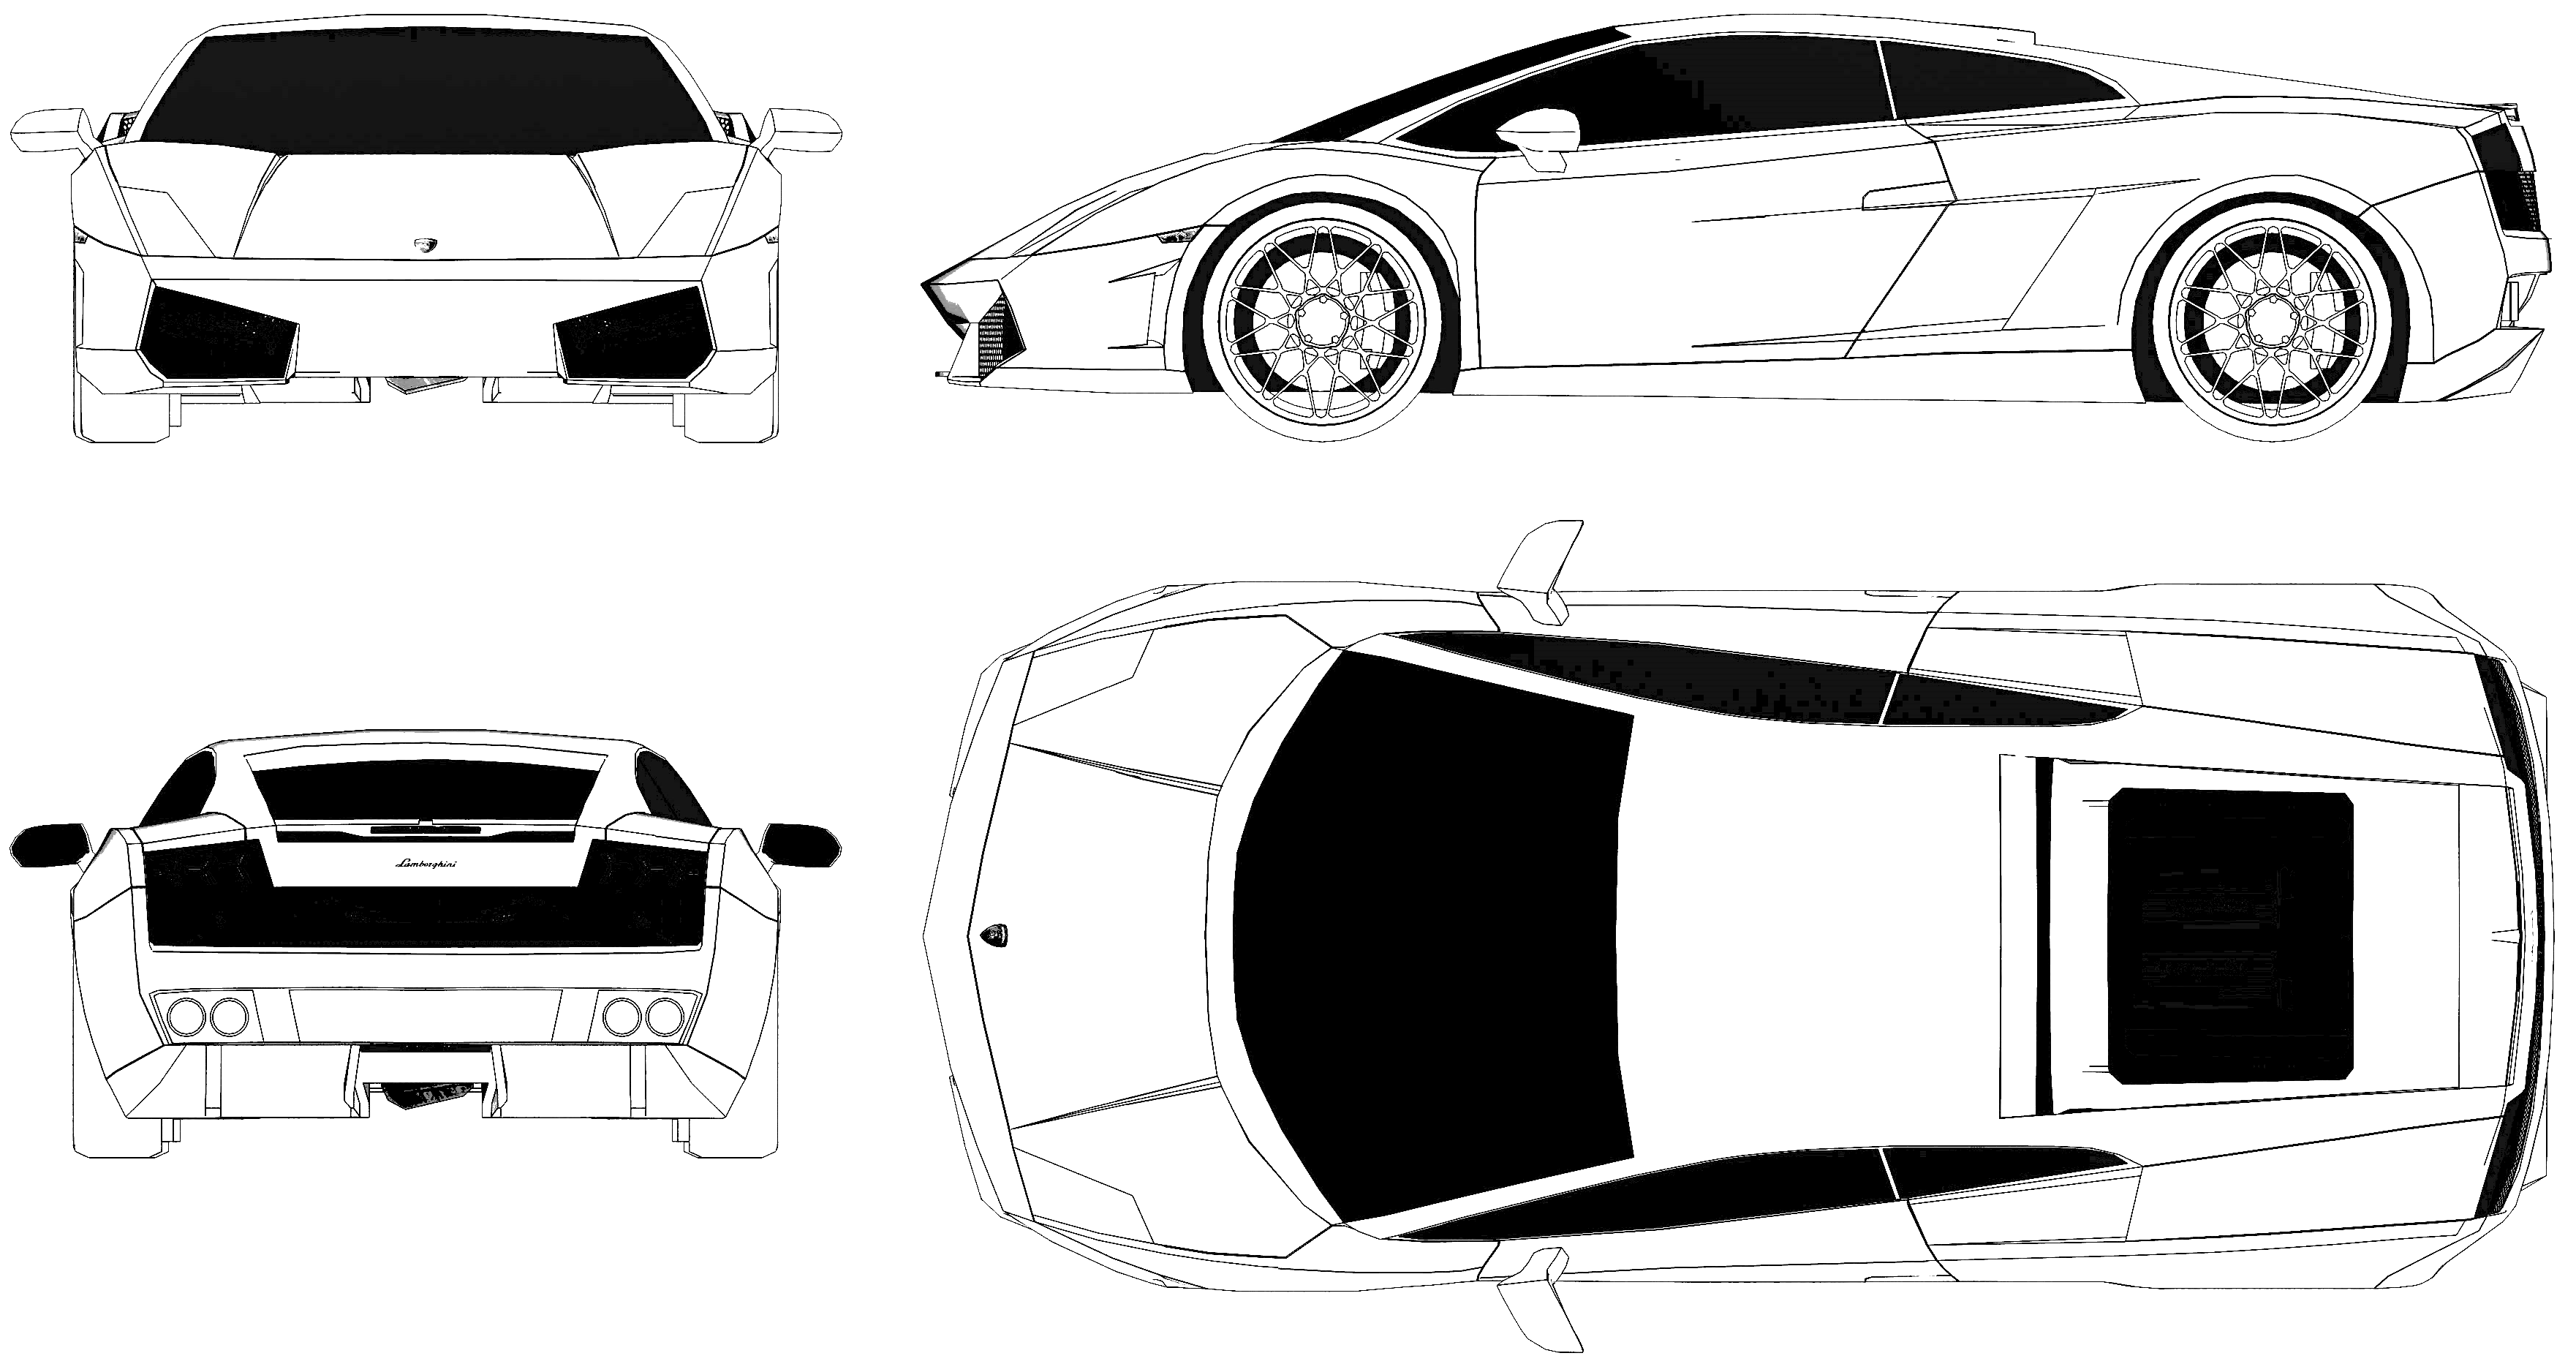 Lamborghini Gallardo LP550 Blueprint - Download free blueprint for ...